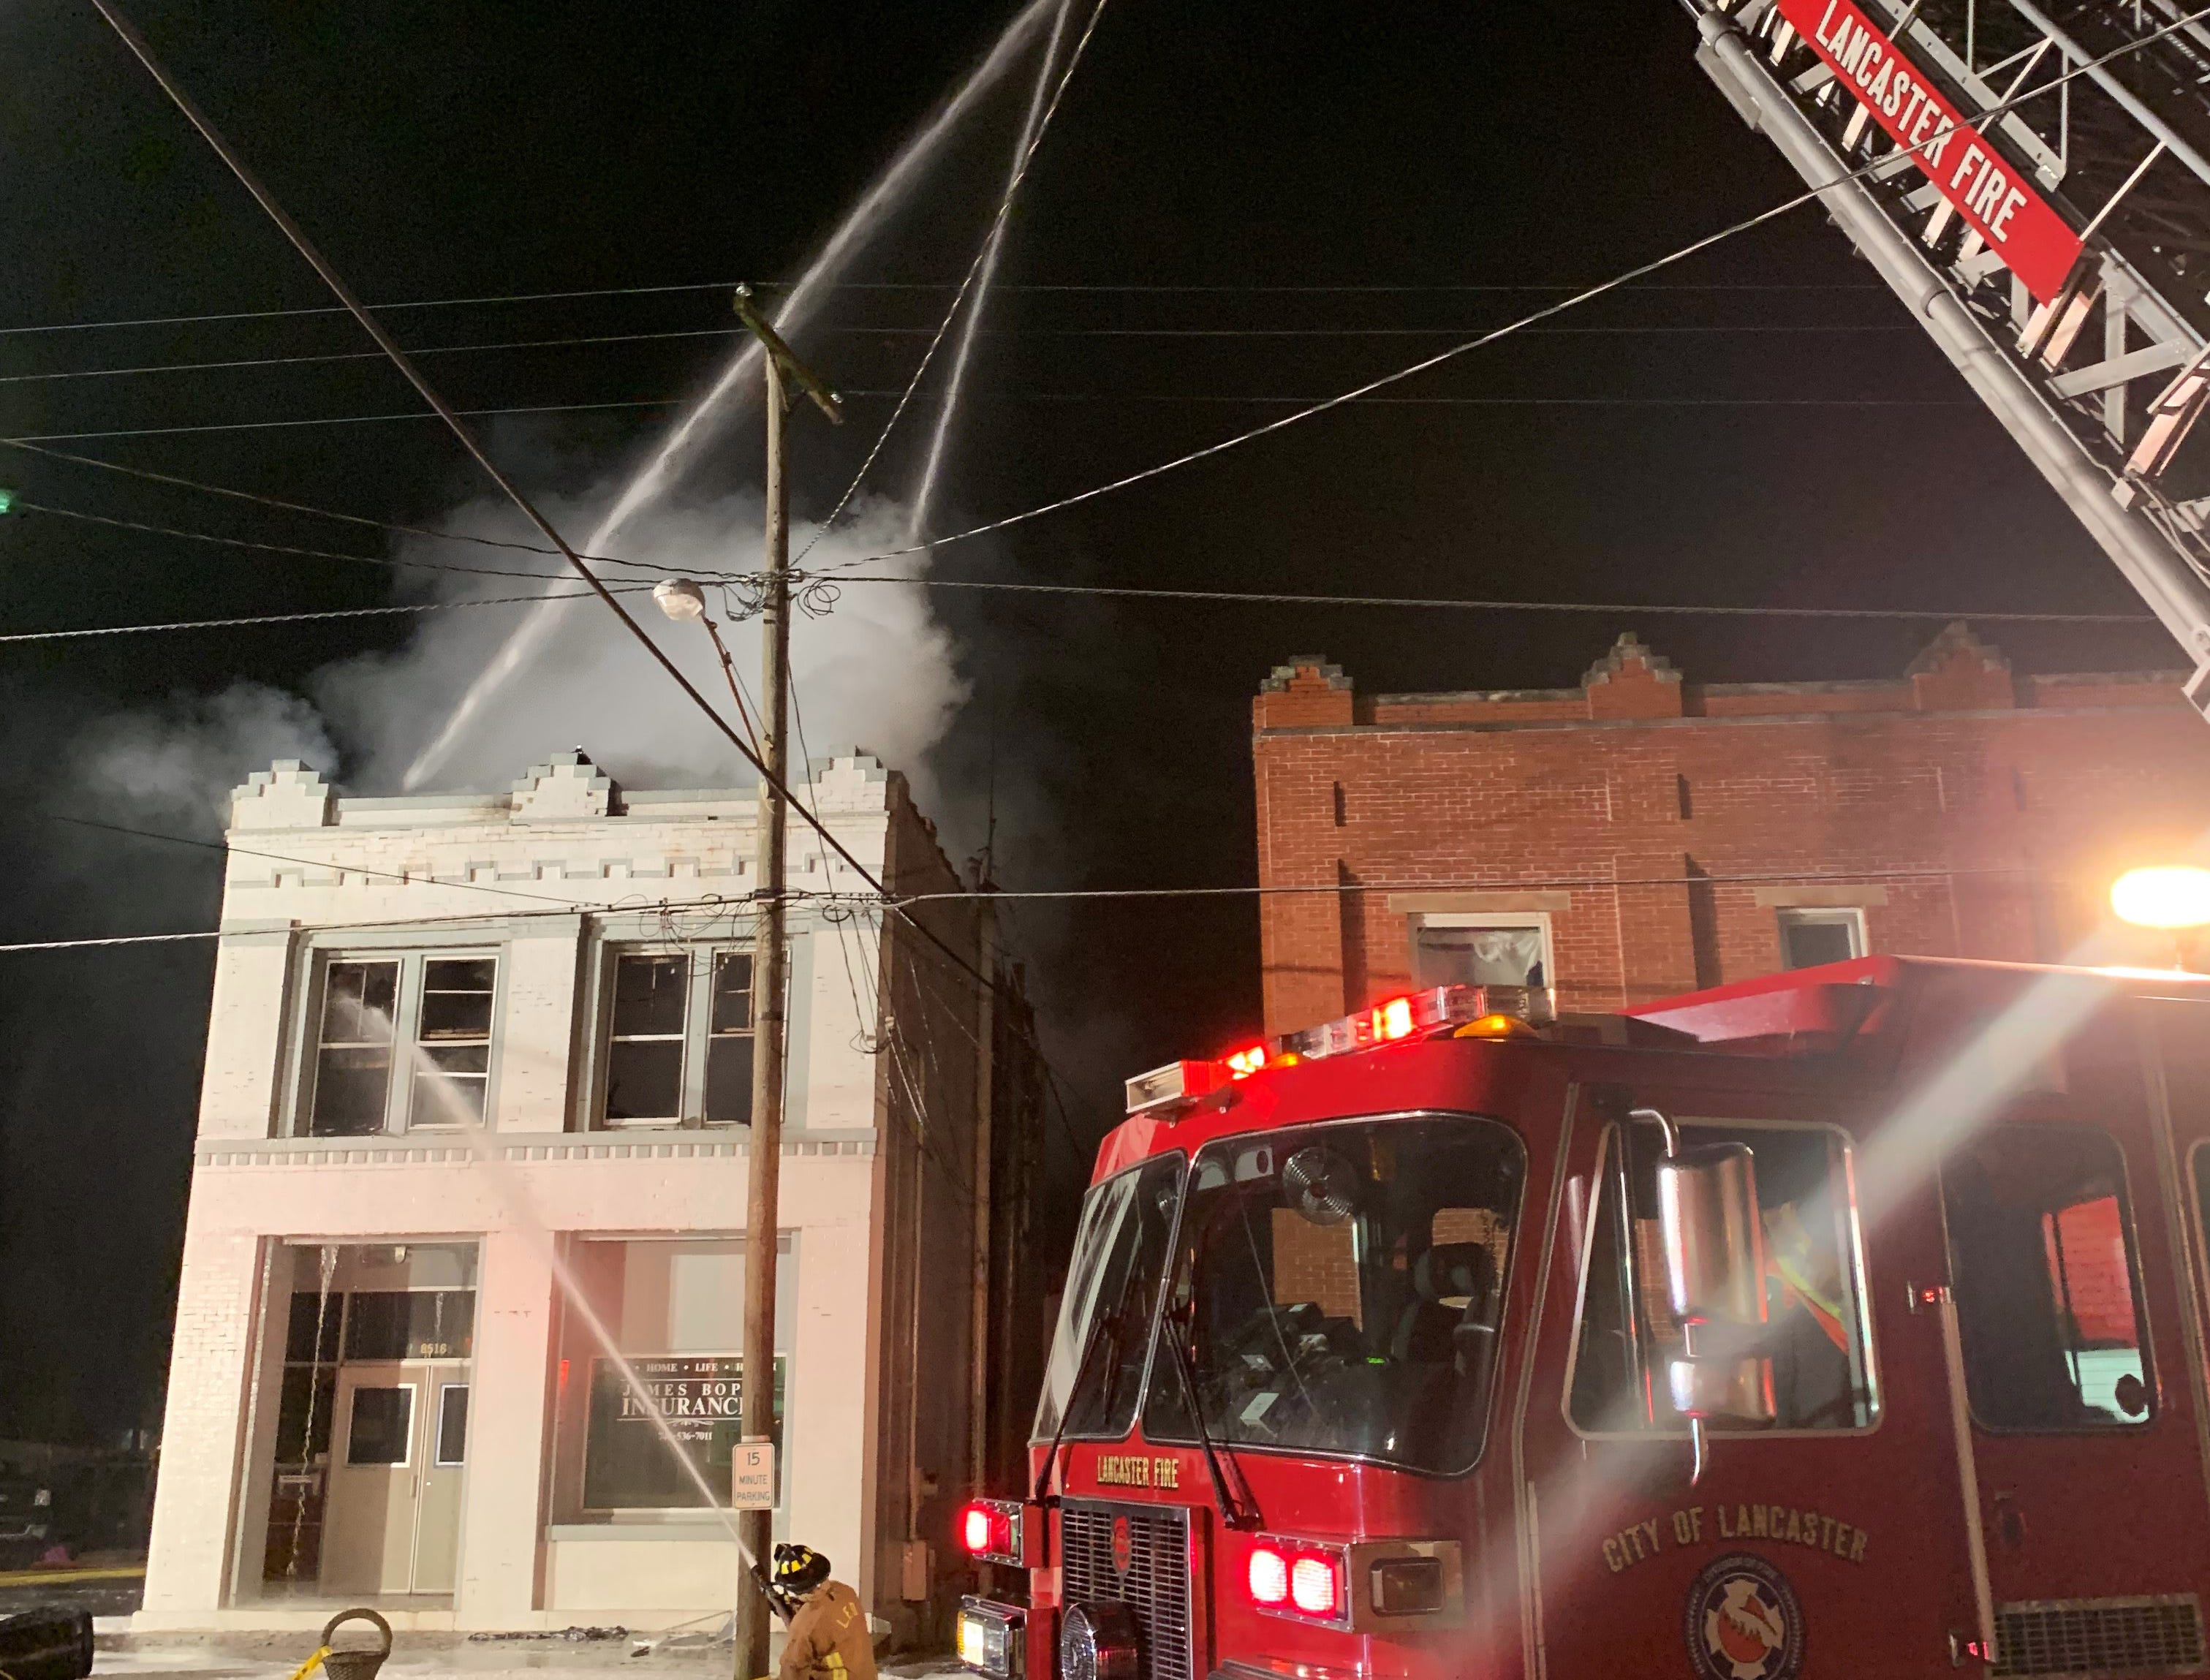 Firefighters battle a rekindled fire early Friday morning, Jan. 4, 2019, on Main Street in Rushville.